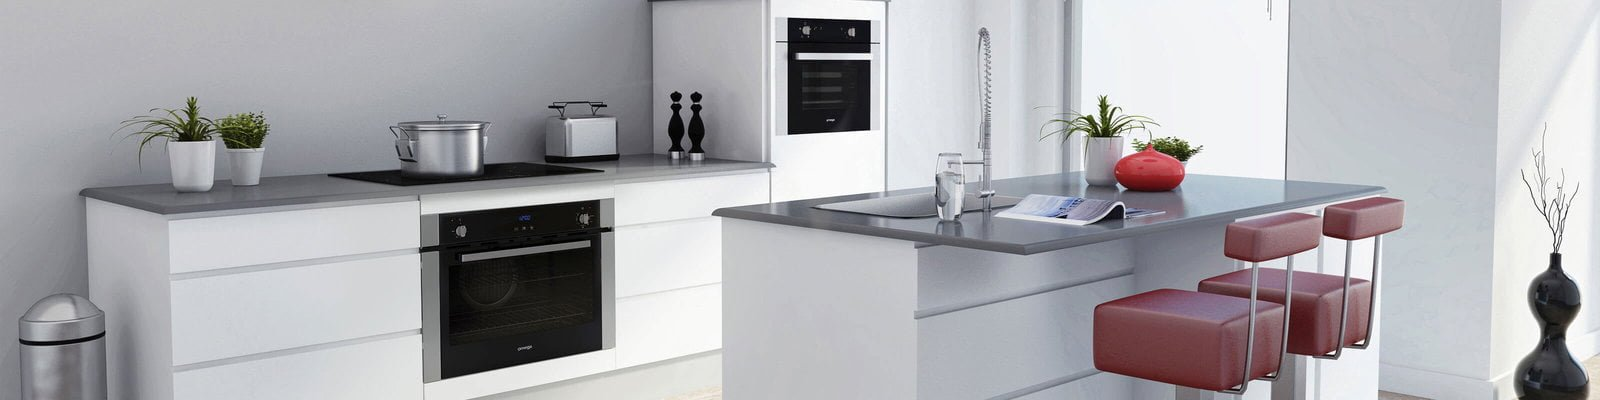 Omega Appliance Repairs